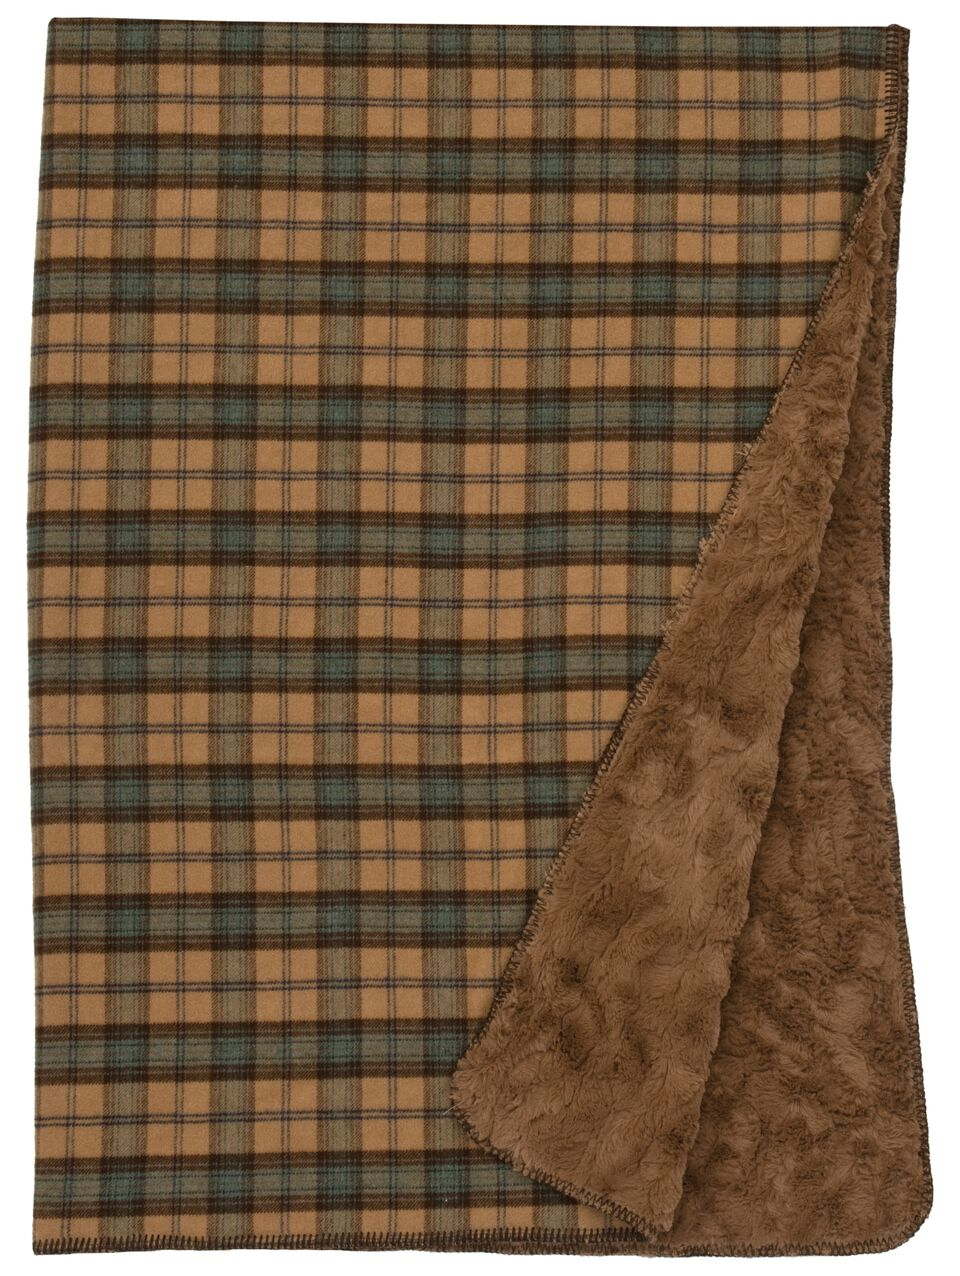 Premier Dillon Plaid Throw Wooded River - unique linens online